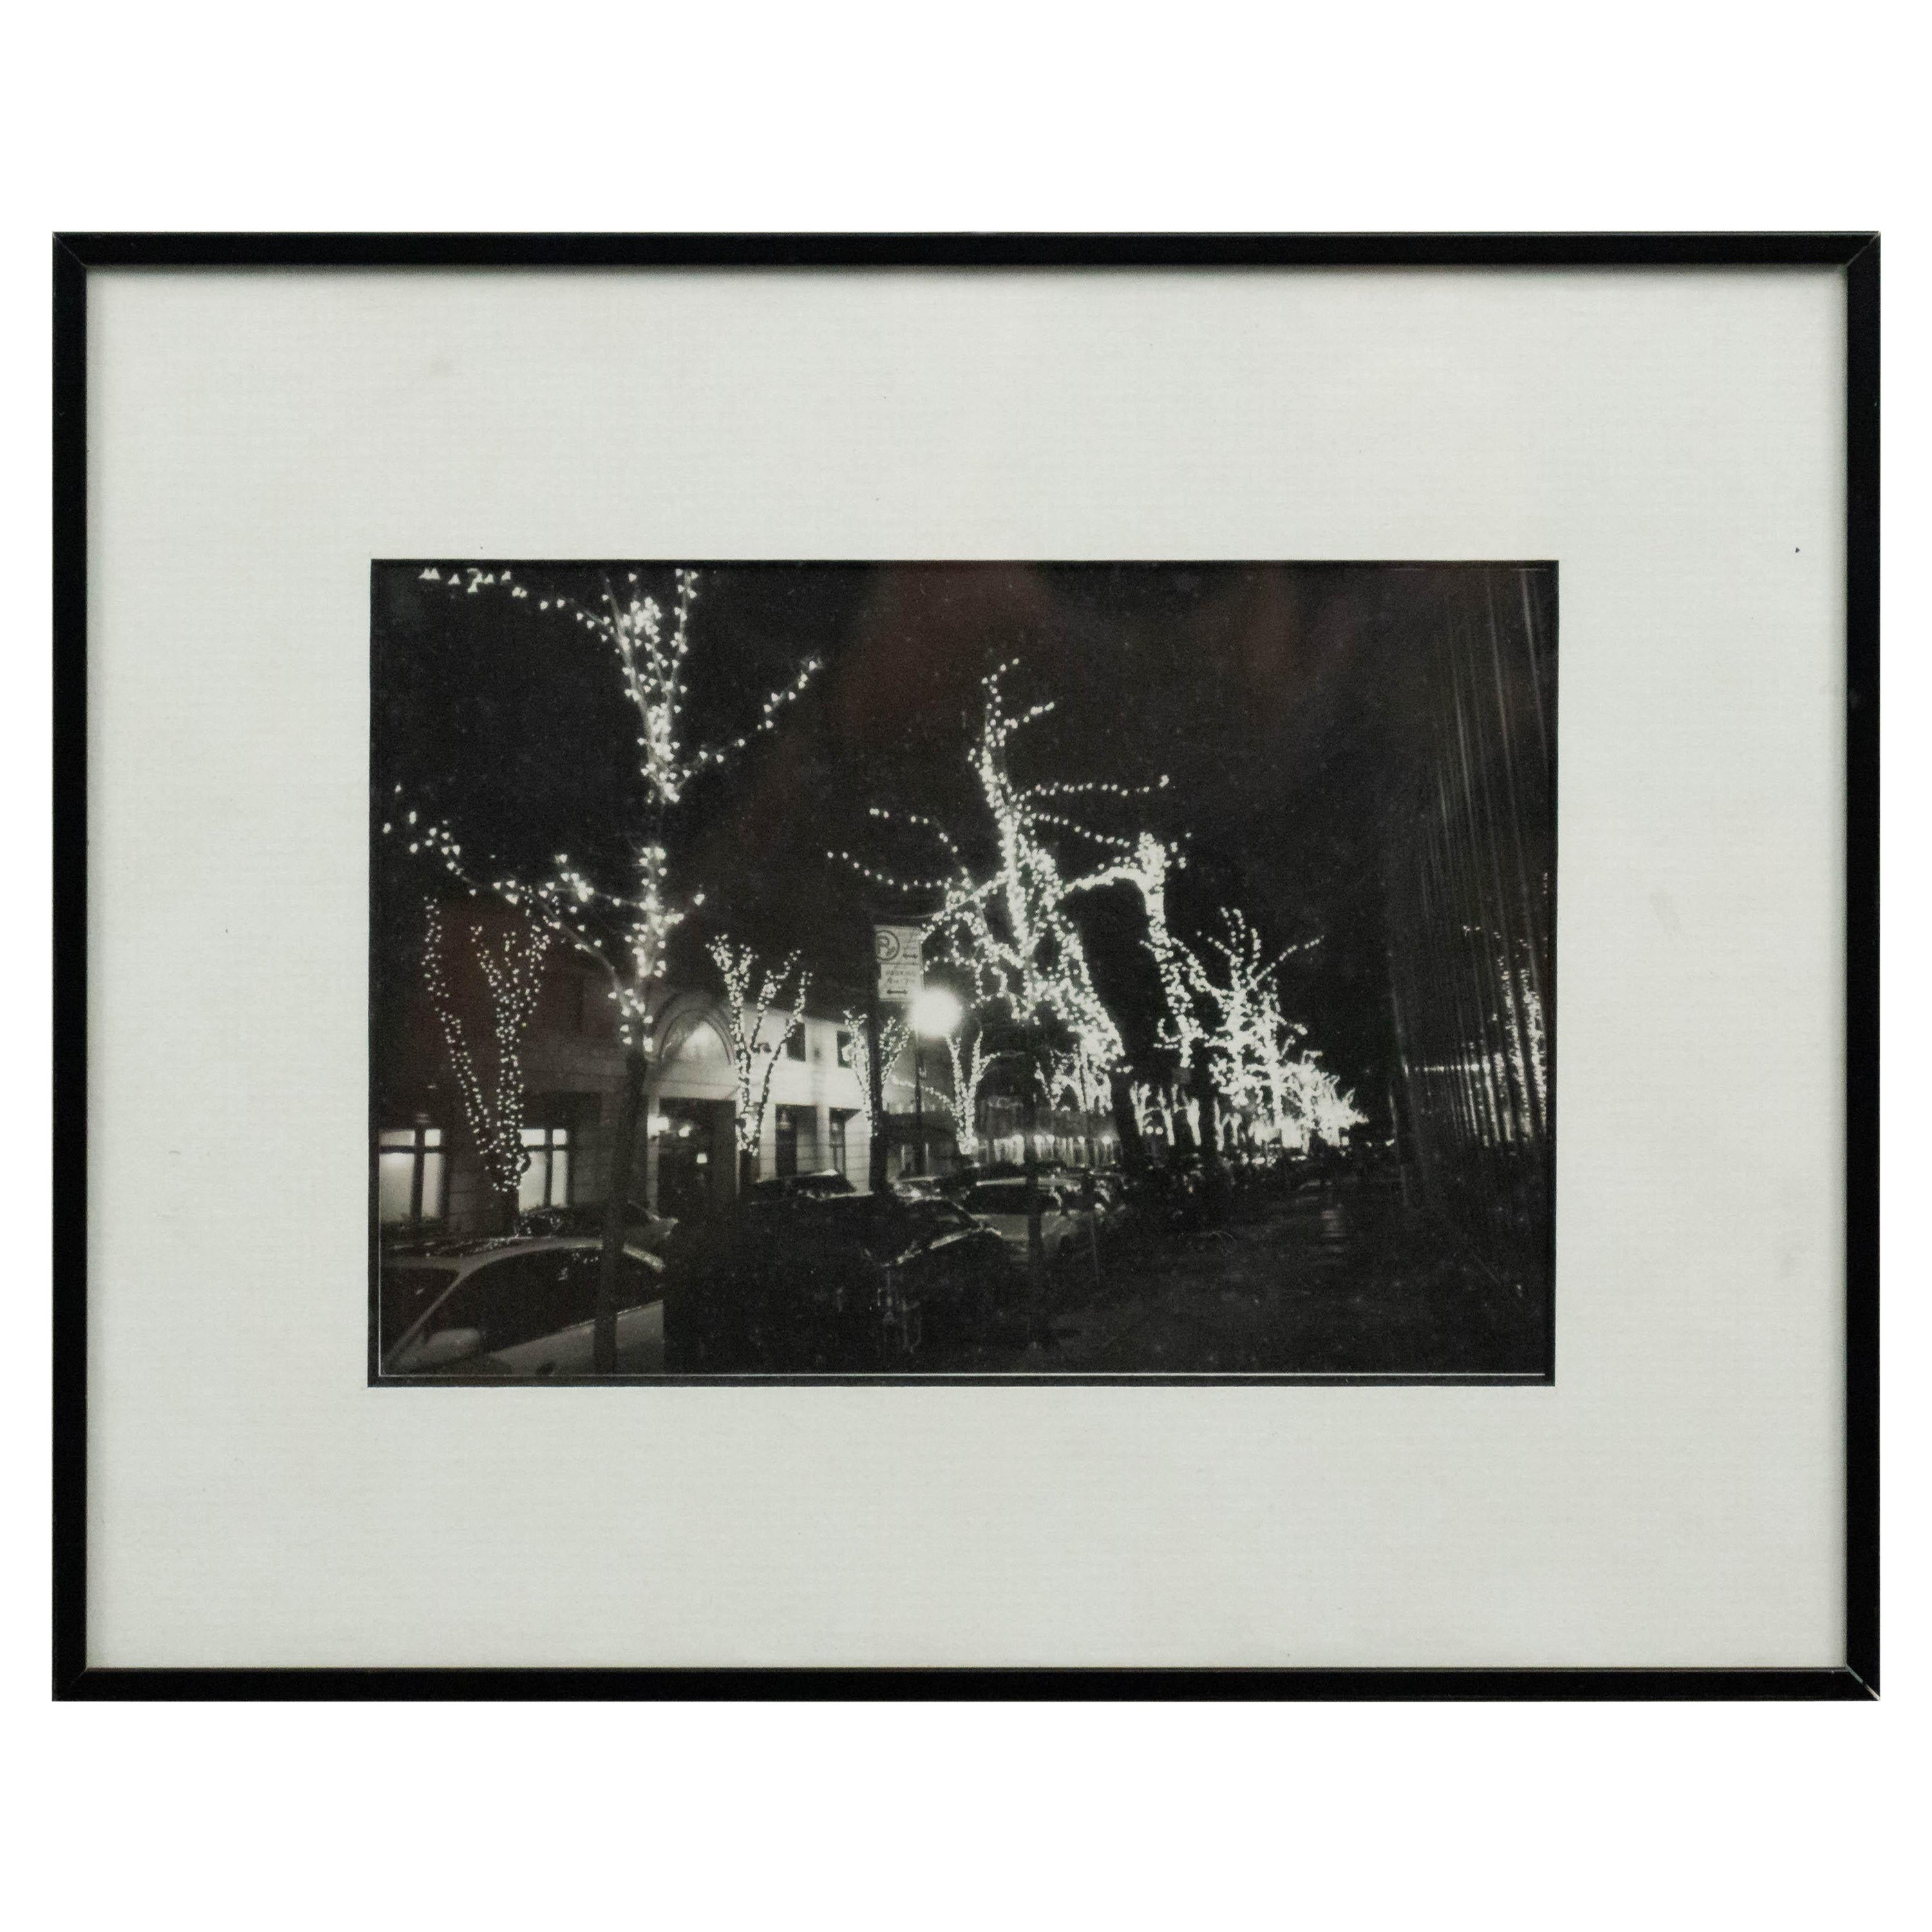 Black and White Photograph of Street Scene